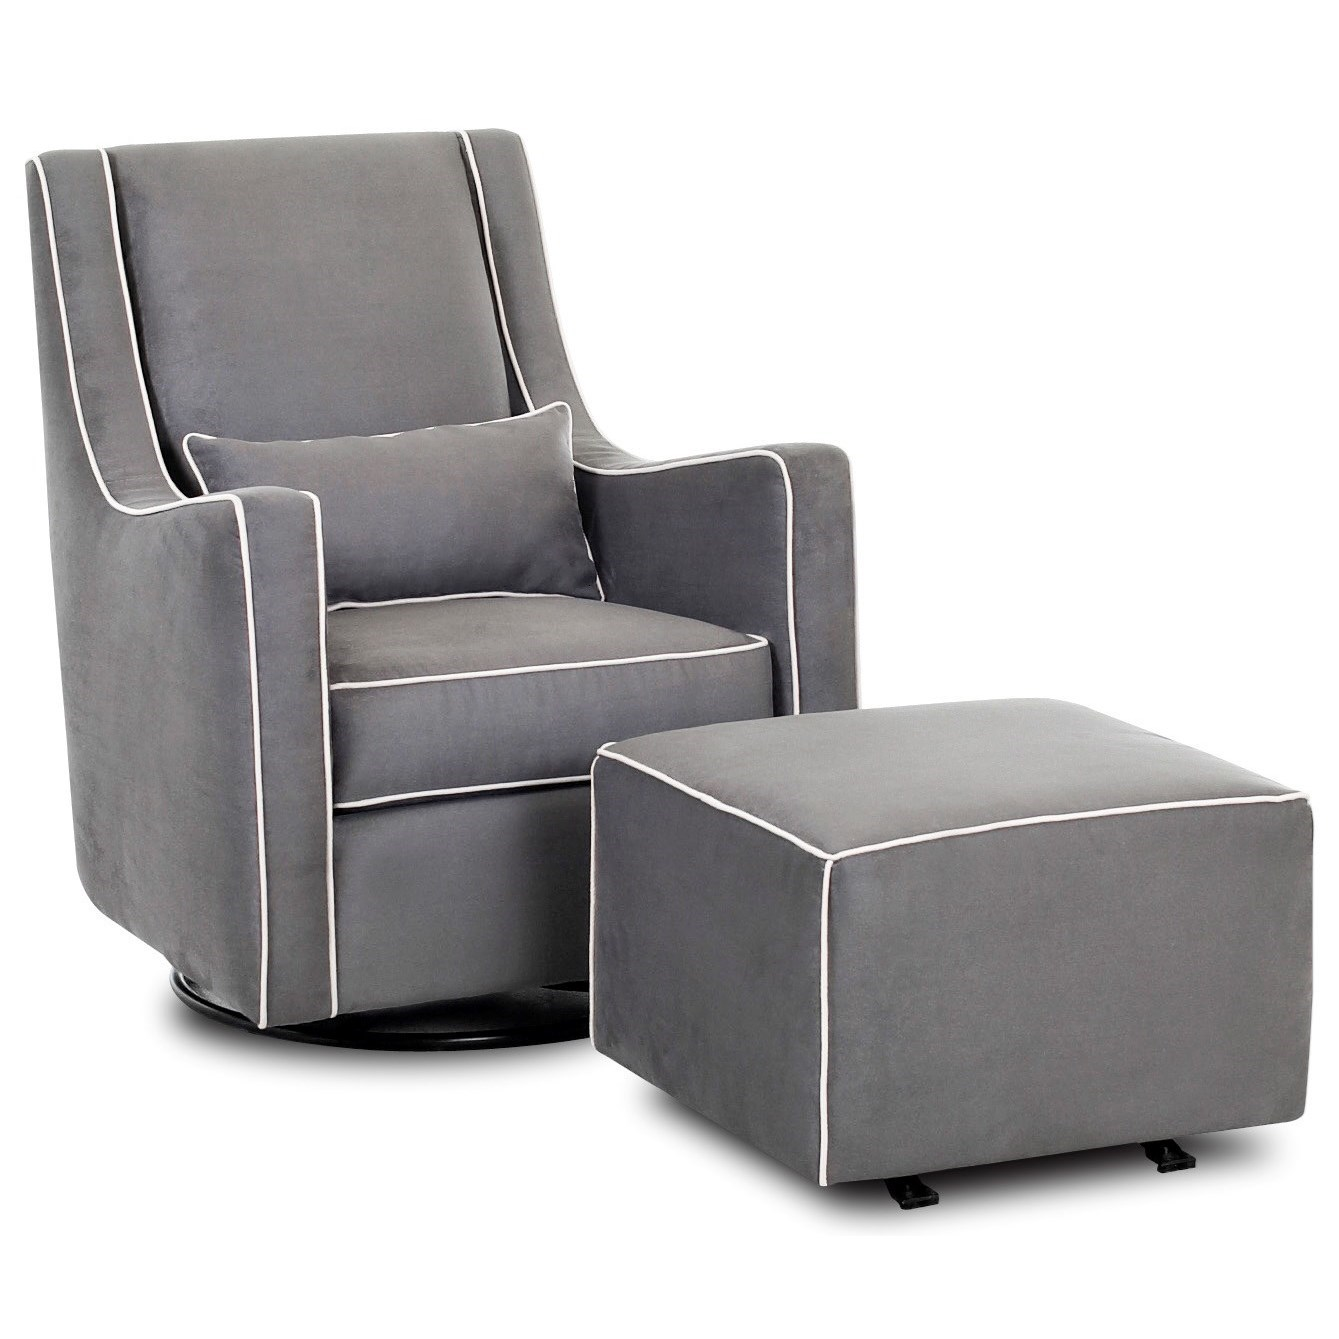 england chair and a half glider webbing for chairs klaussner accents contemporary lacey swivel ottoman set | dunk ...